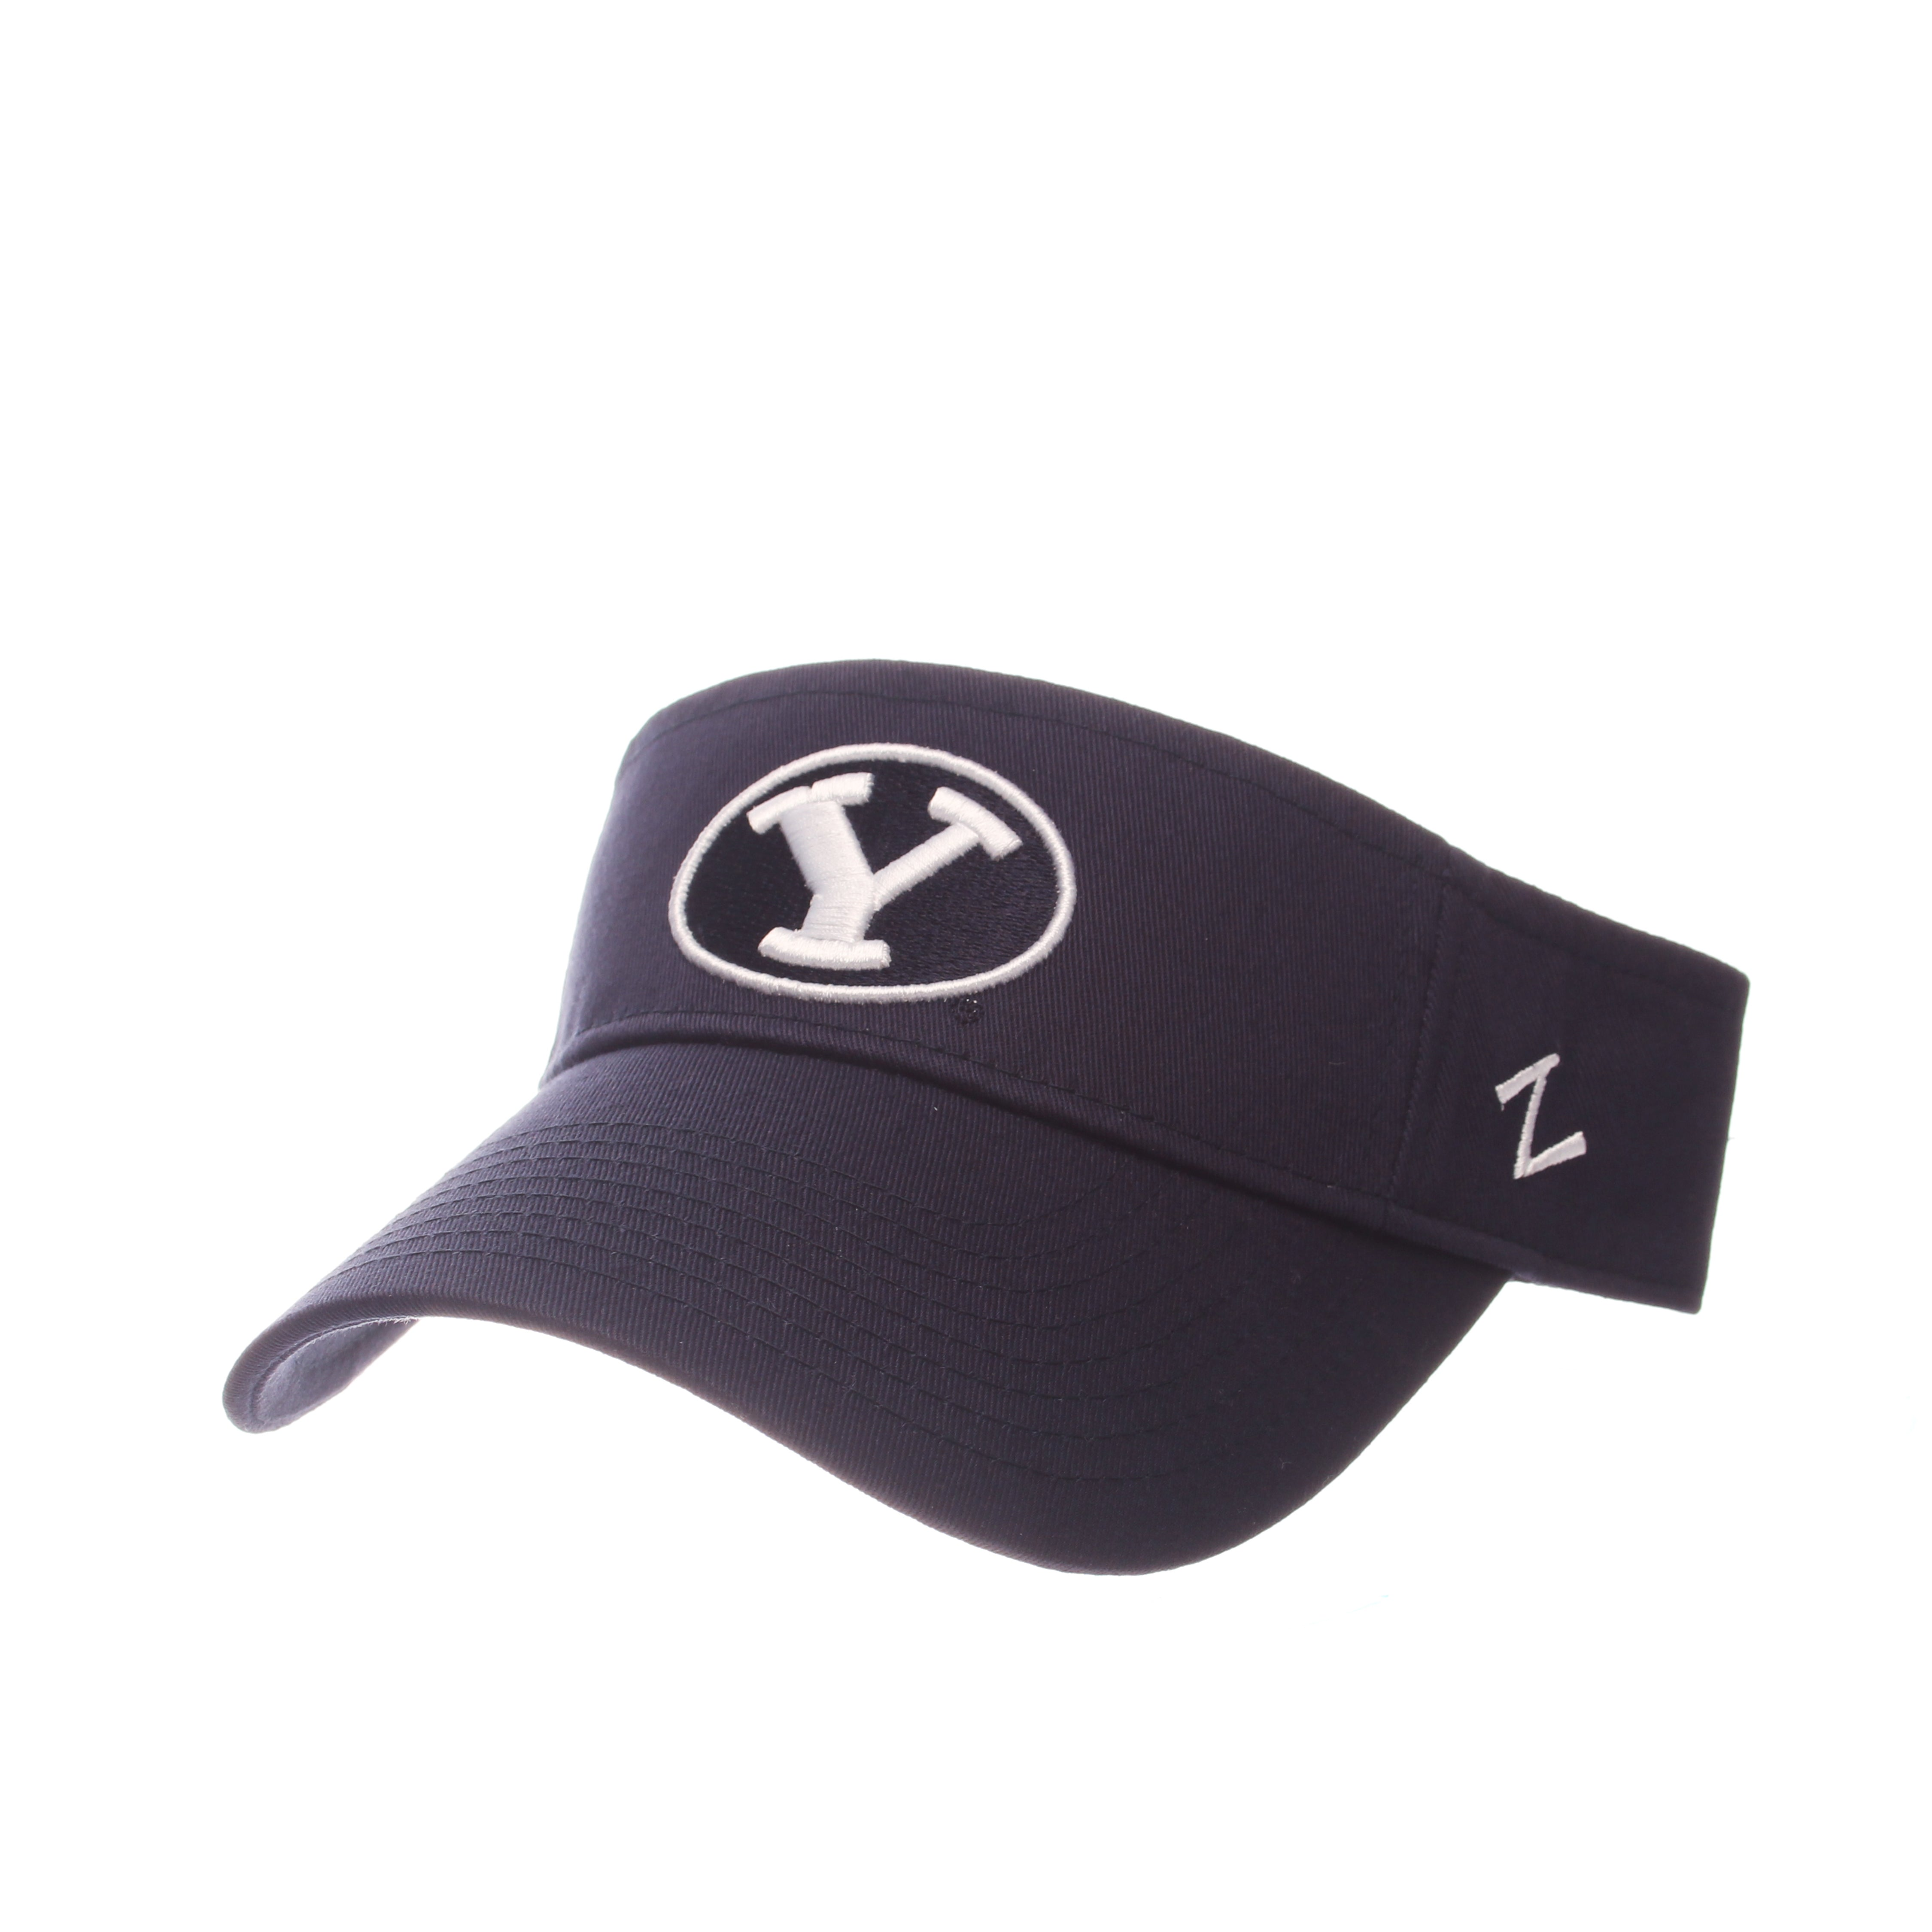 Brigham Young University Visor Visor (Y OVAL) Navy Dark 100% Cotton Twill Adjustable hats by Zephyr